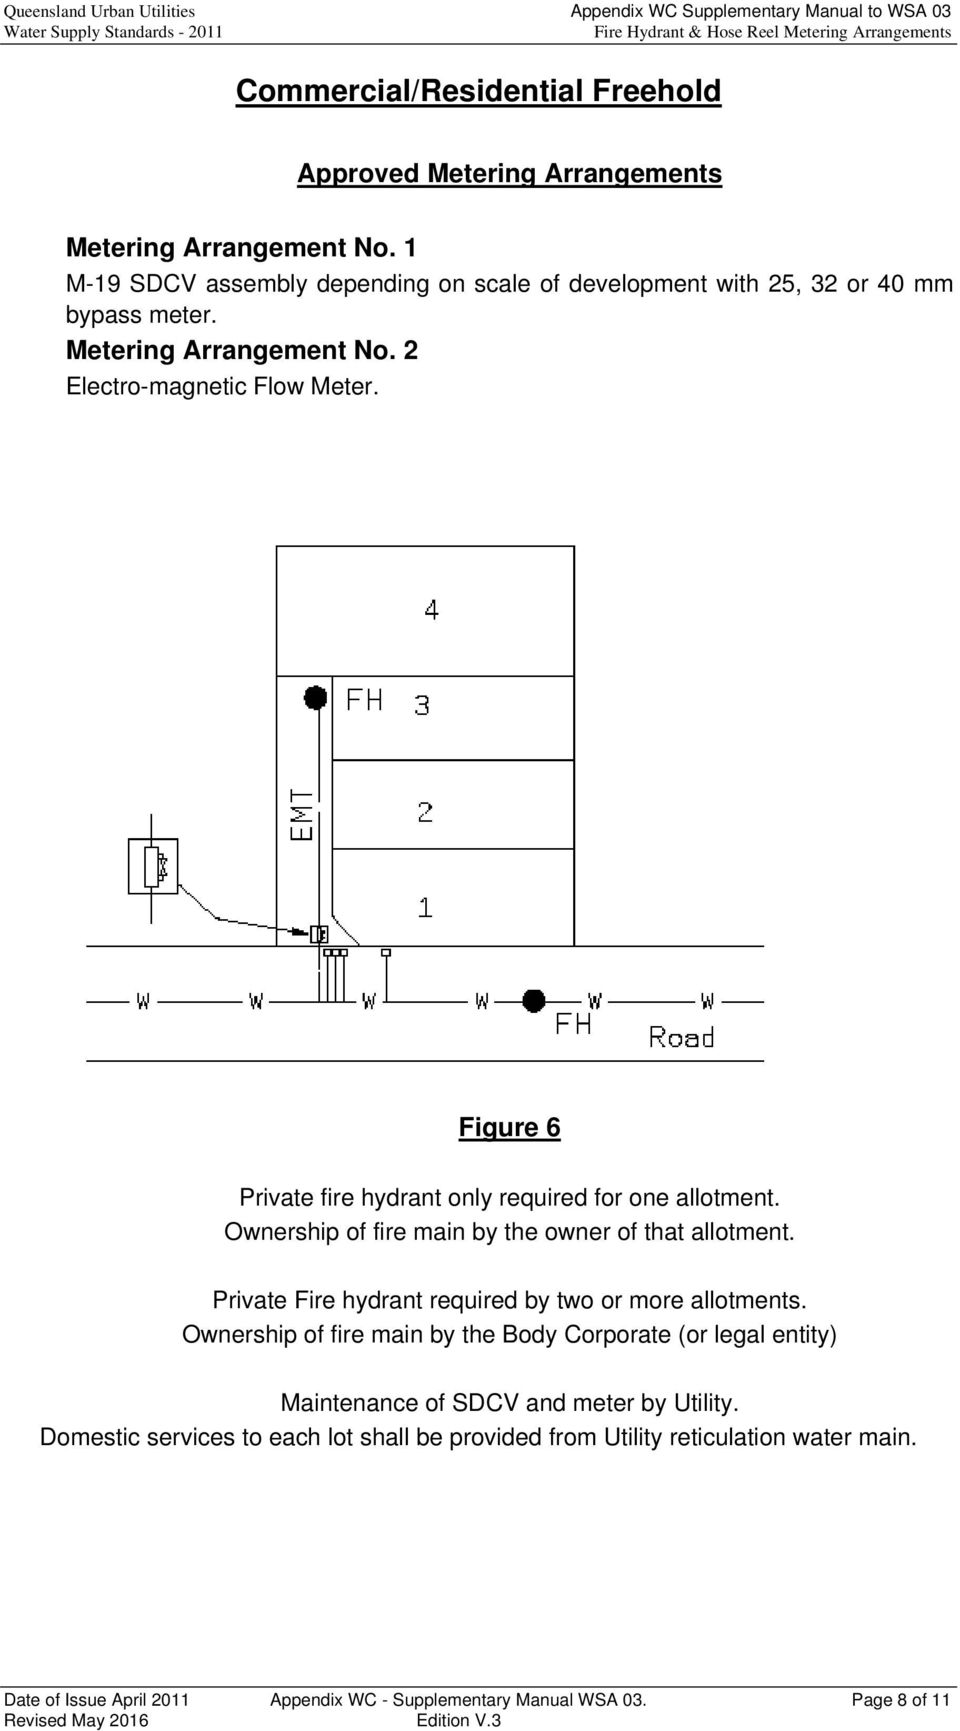 Appendix Wc Fire Hydrant Hose Reel Metering Arrangements Pdf Water Flow Meter Wiring Diagrams Figure 6 Private Only Required For One Allotment Ownership Of Main By